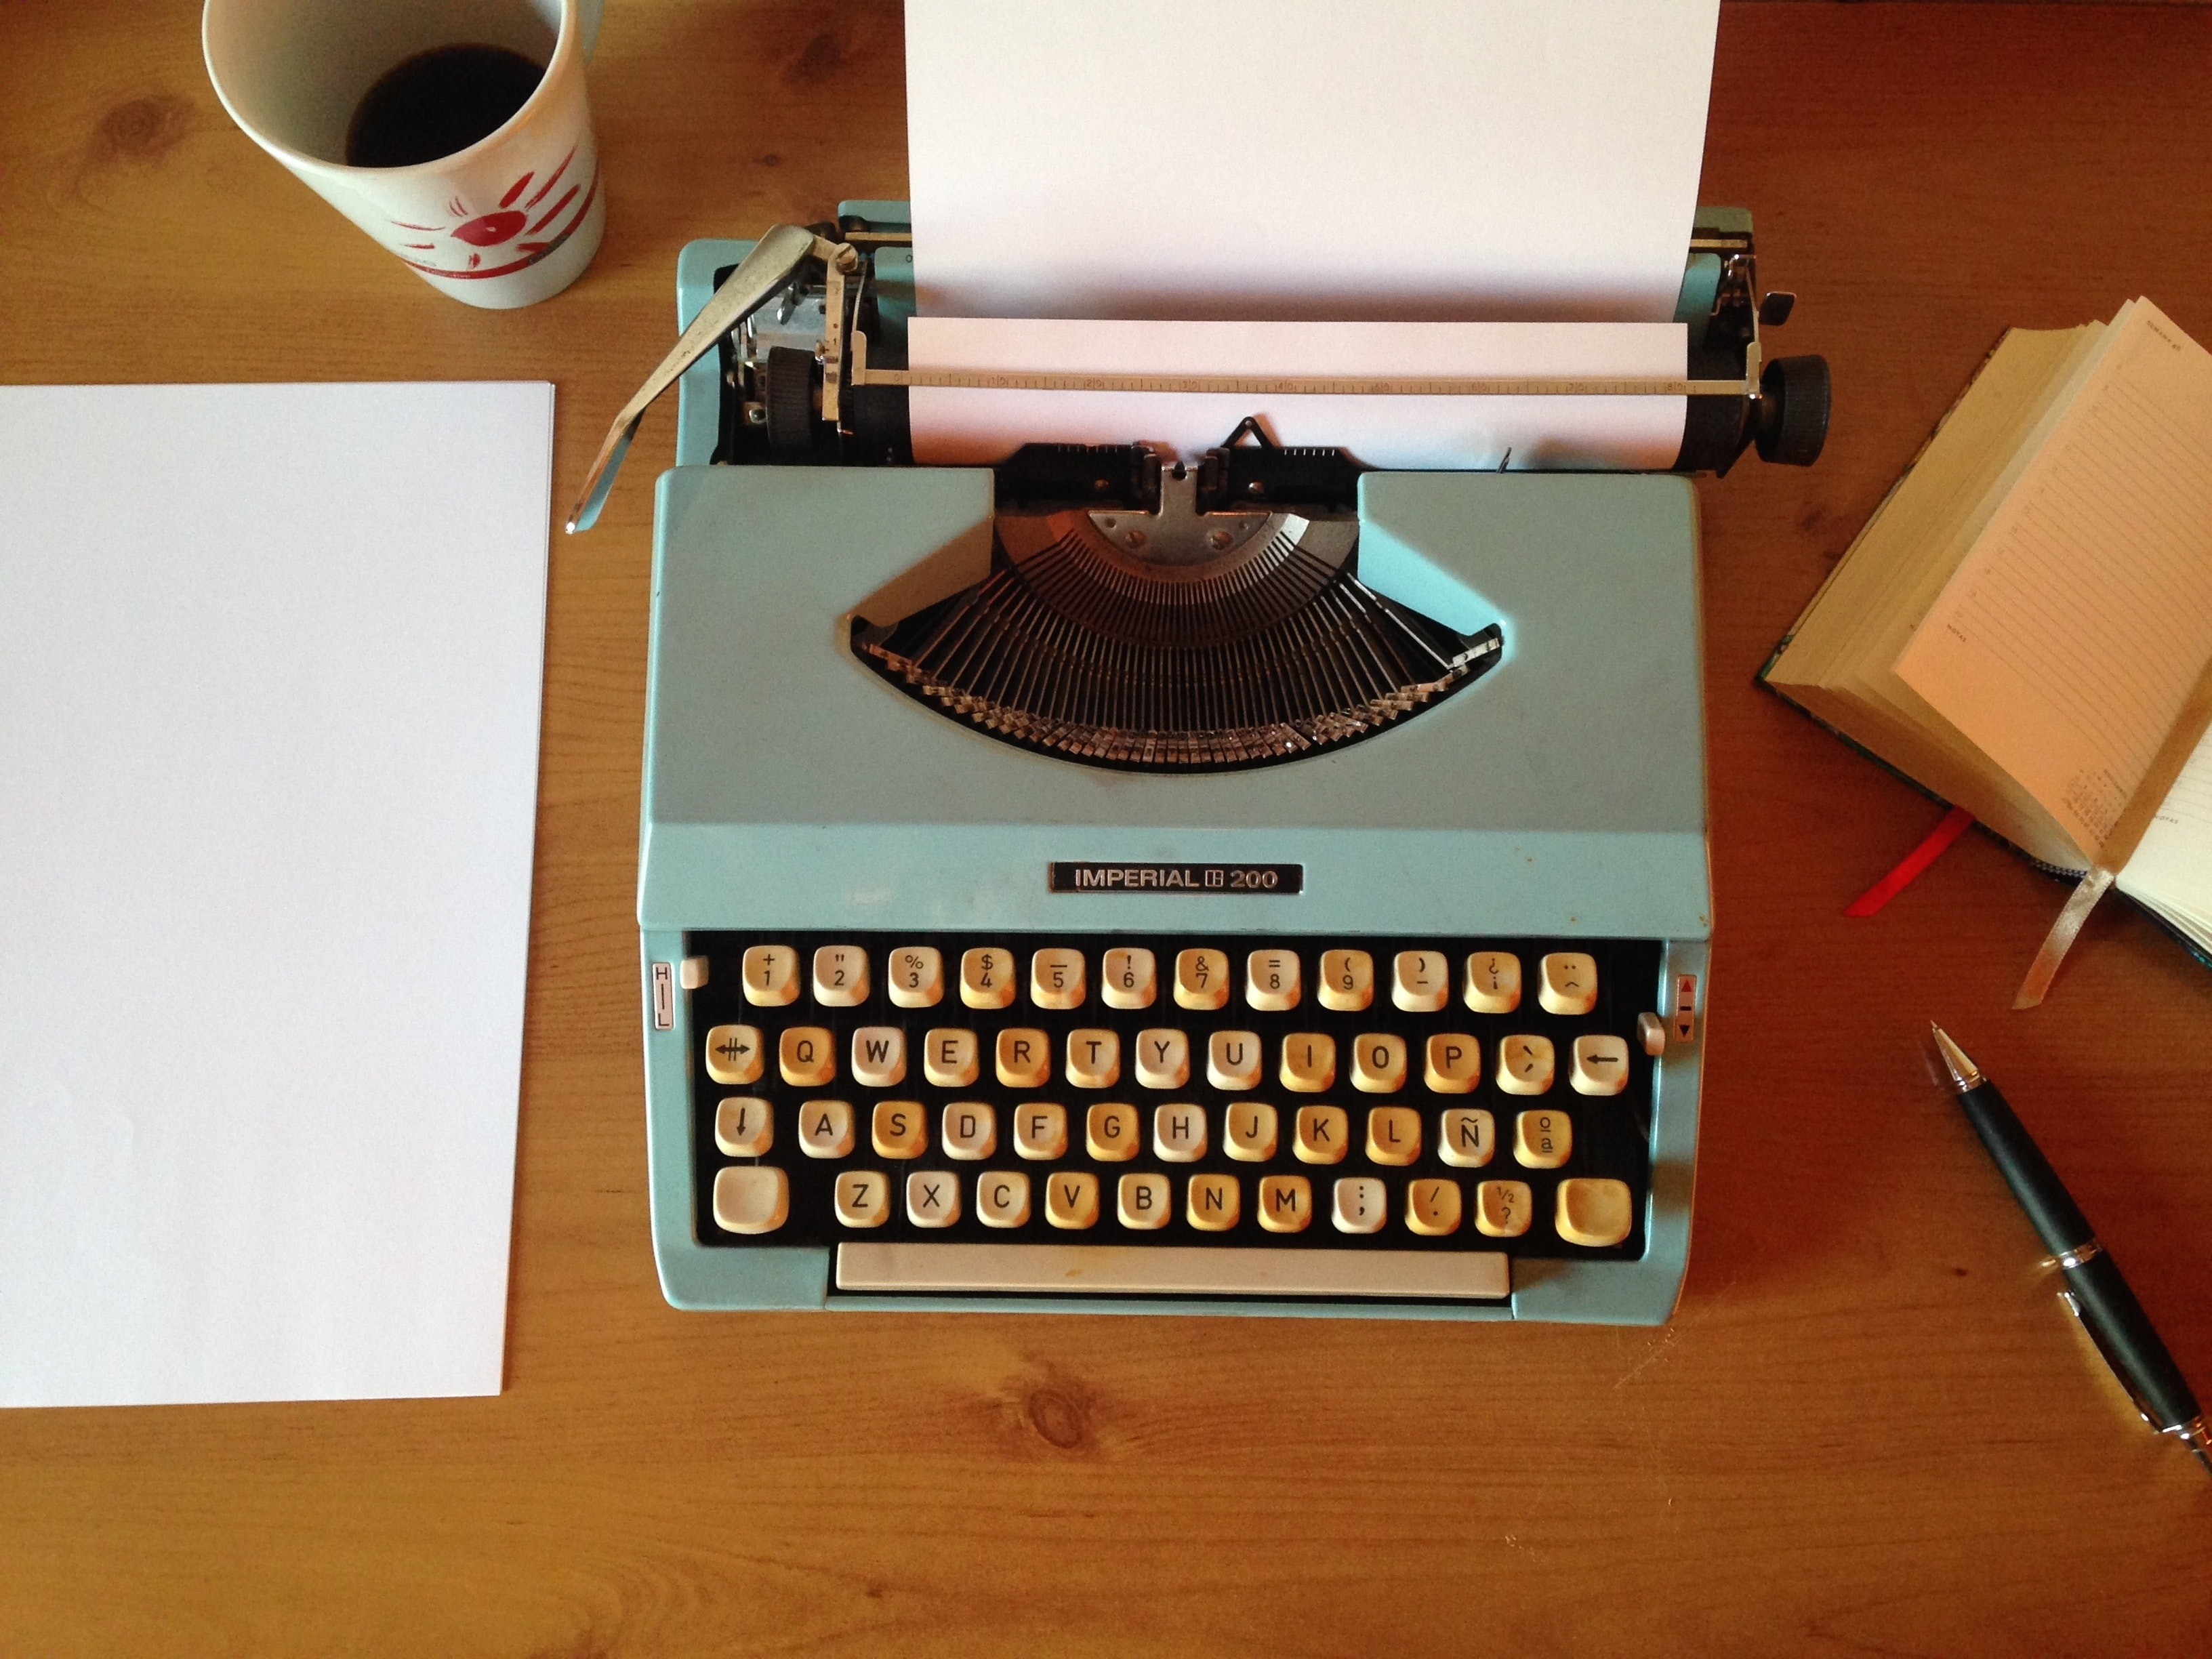 Picture of a teal typewriter on a wooden table with a cup of coffee, pens and stationary by it.